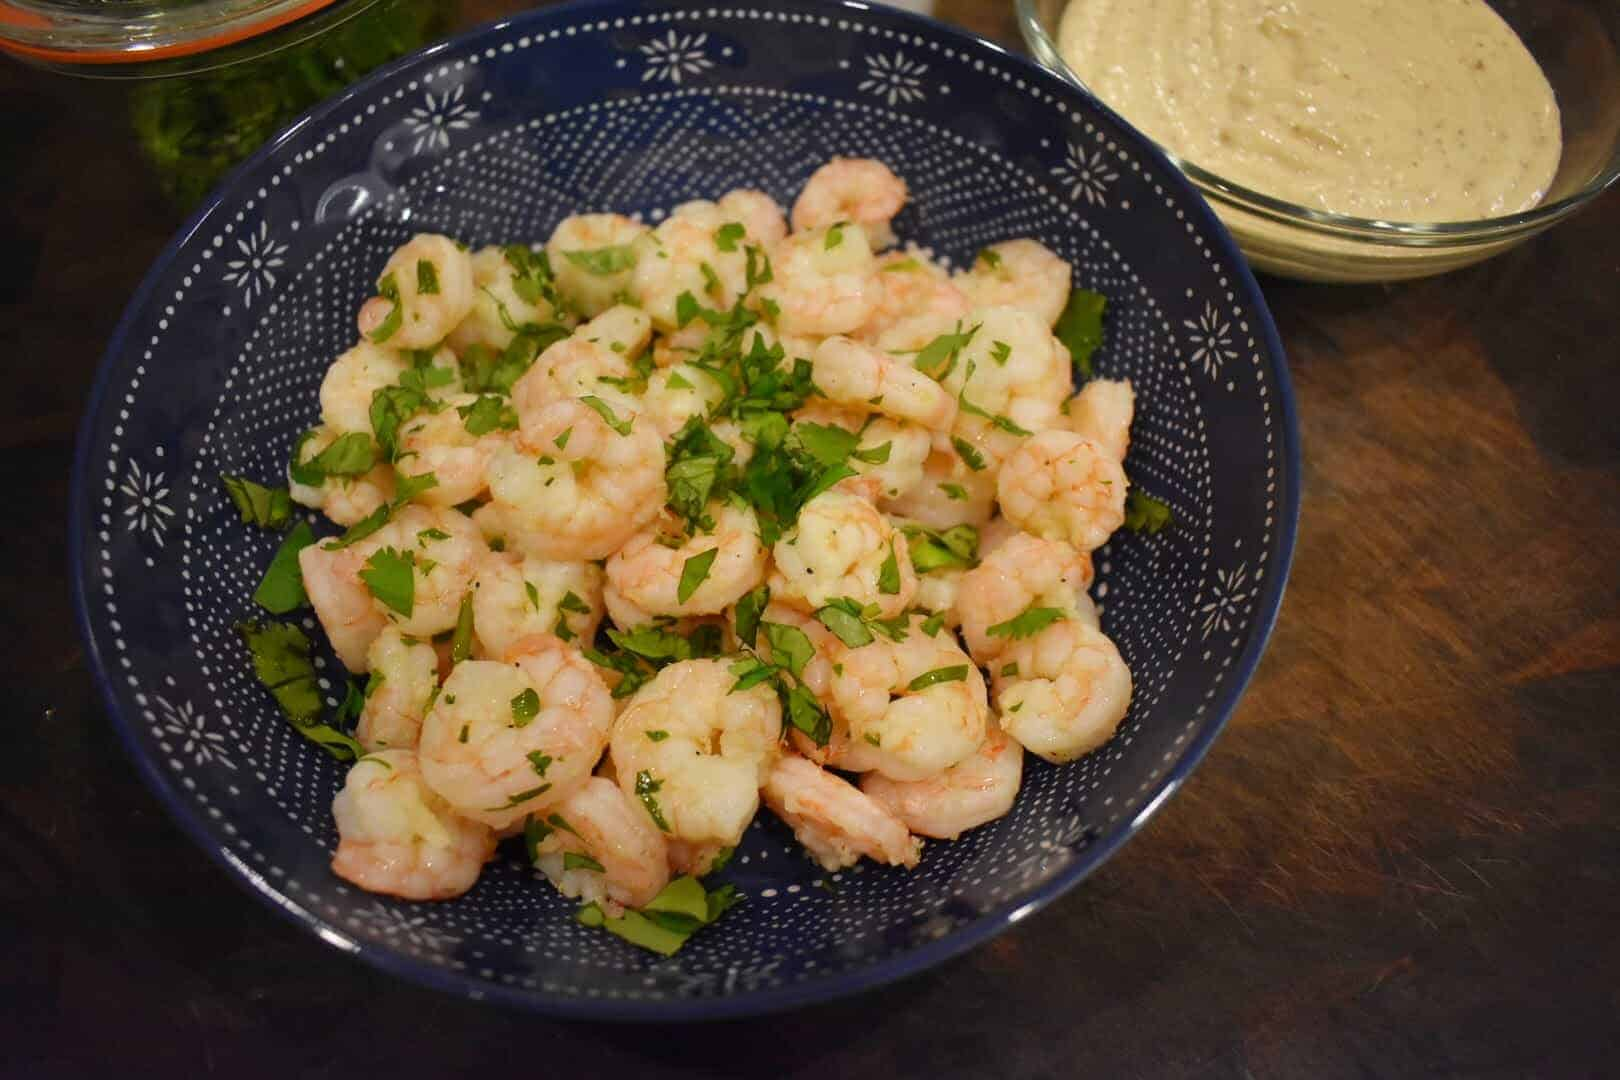 lemony boiled shrimp with honey mustard dipping sauce